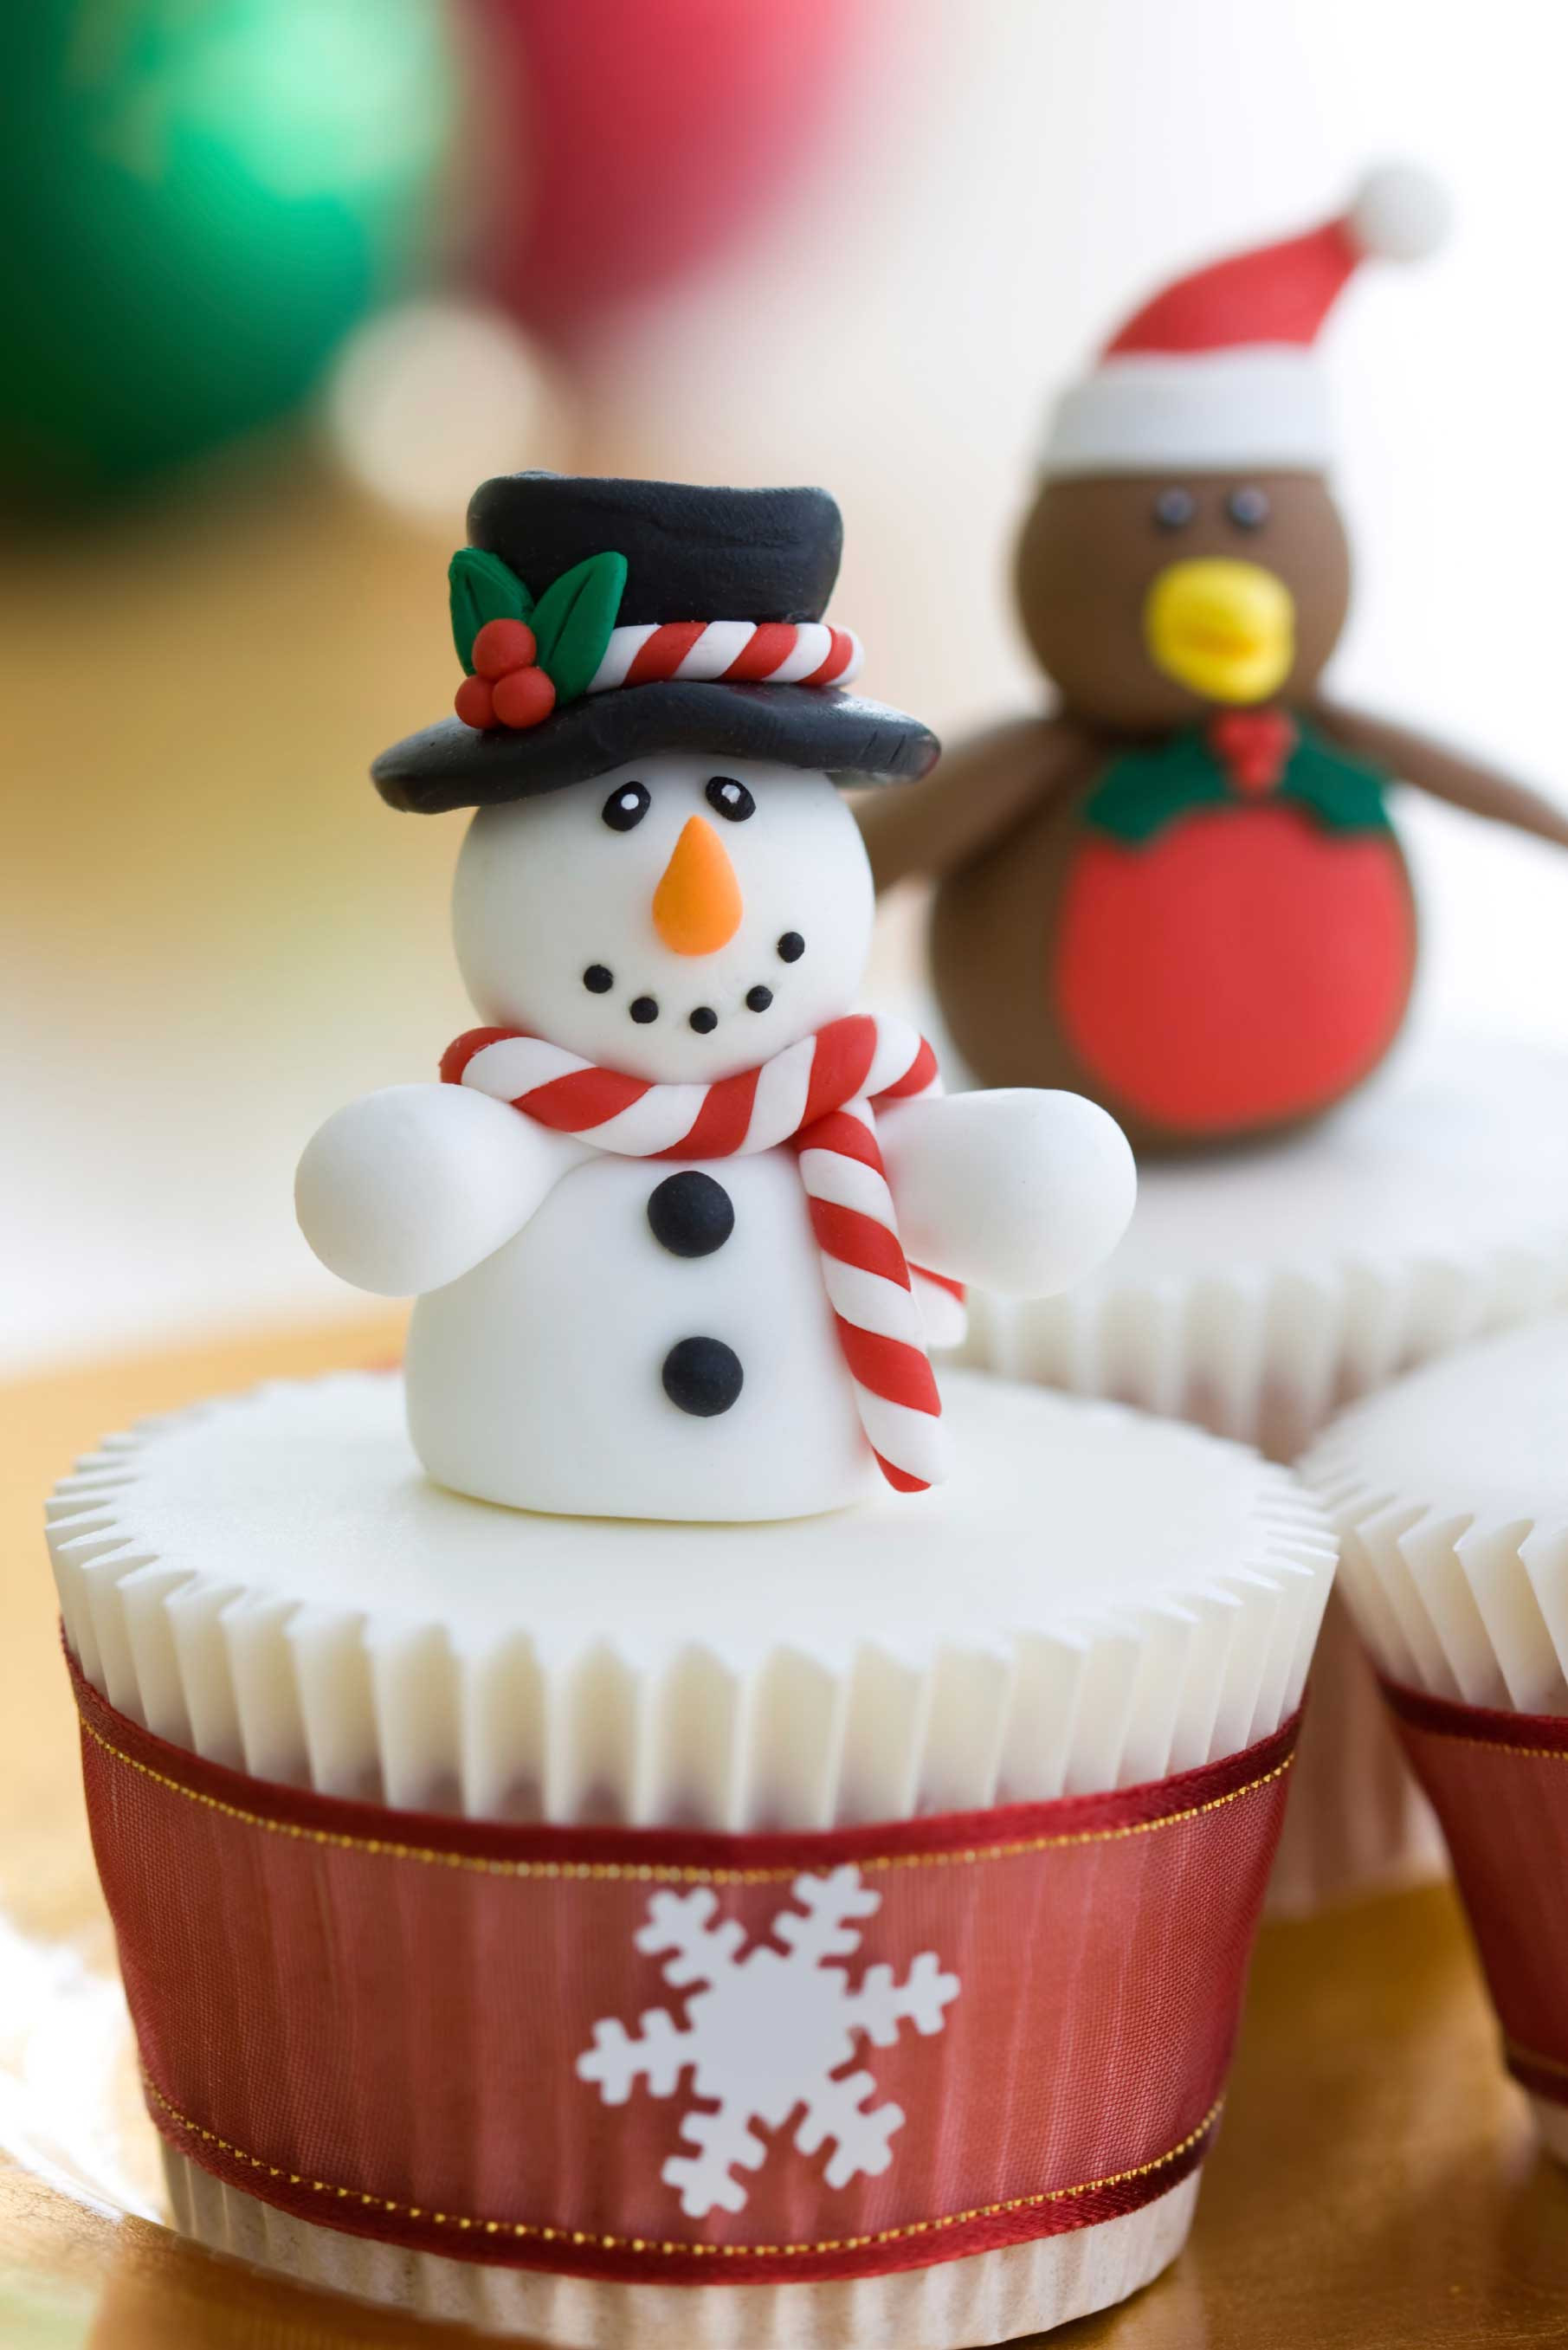 Christmas Cakes And Cupcakes  Christmas Cakes & Baking Gallery Pink Frosting Party Ideas